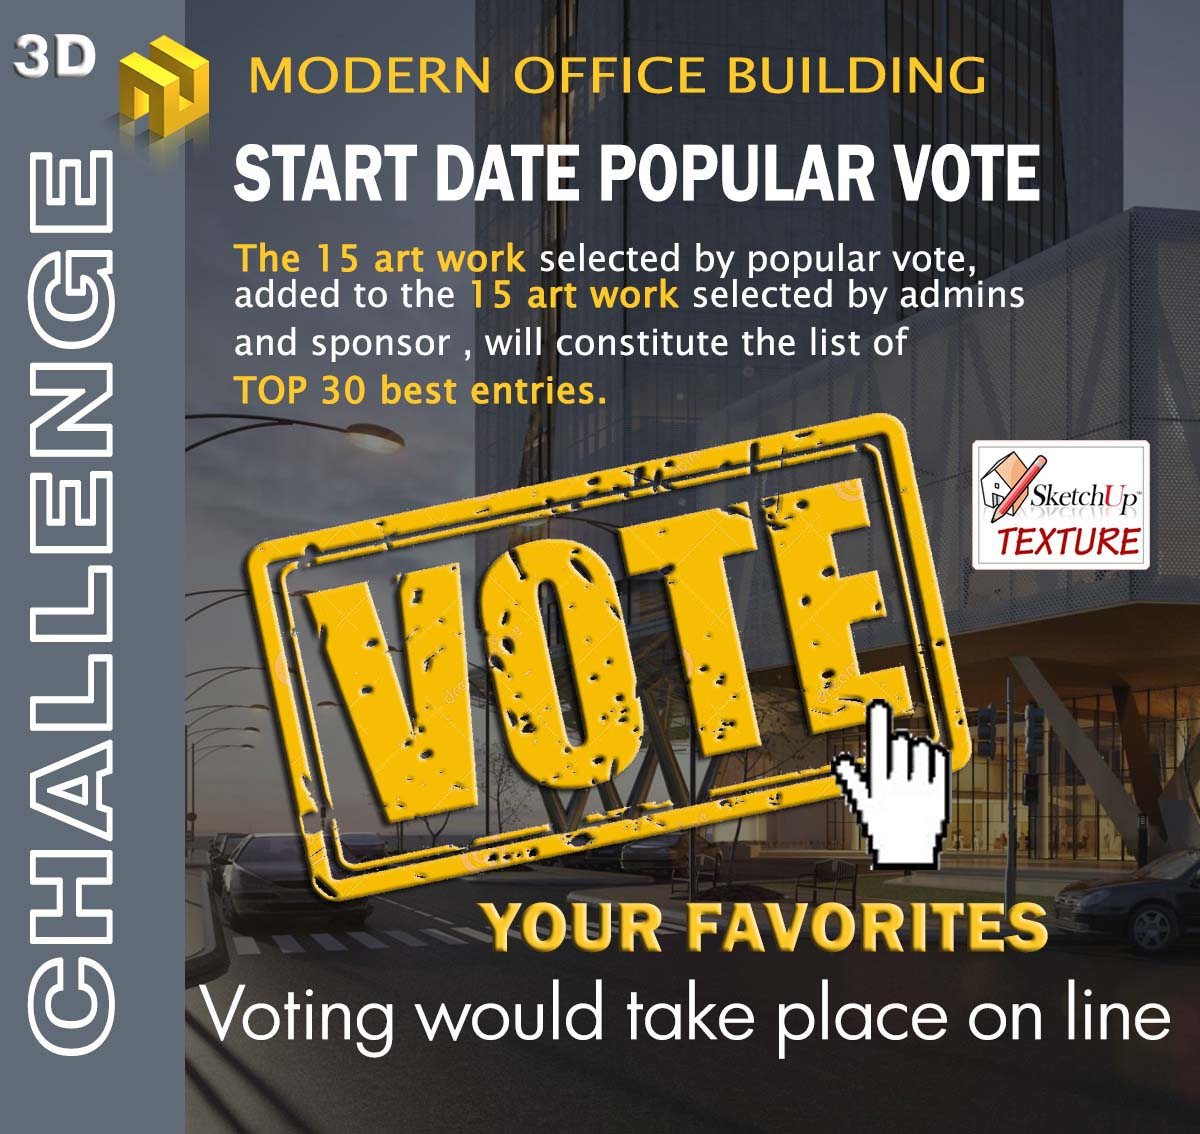 3d challenge modern office bouilding  render contest voting